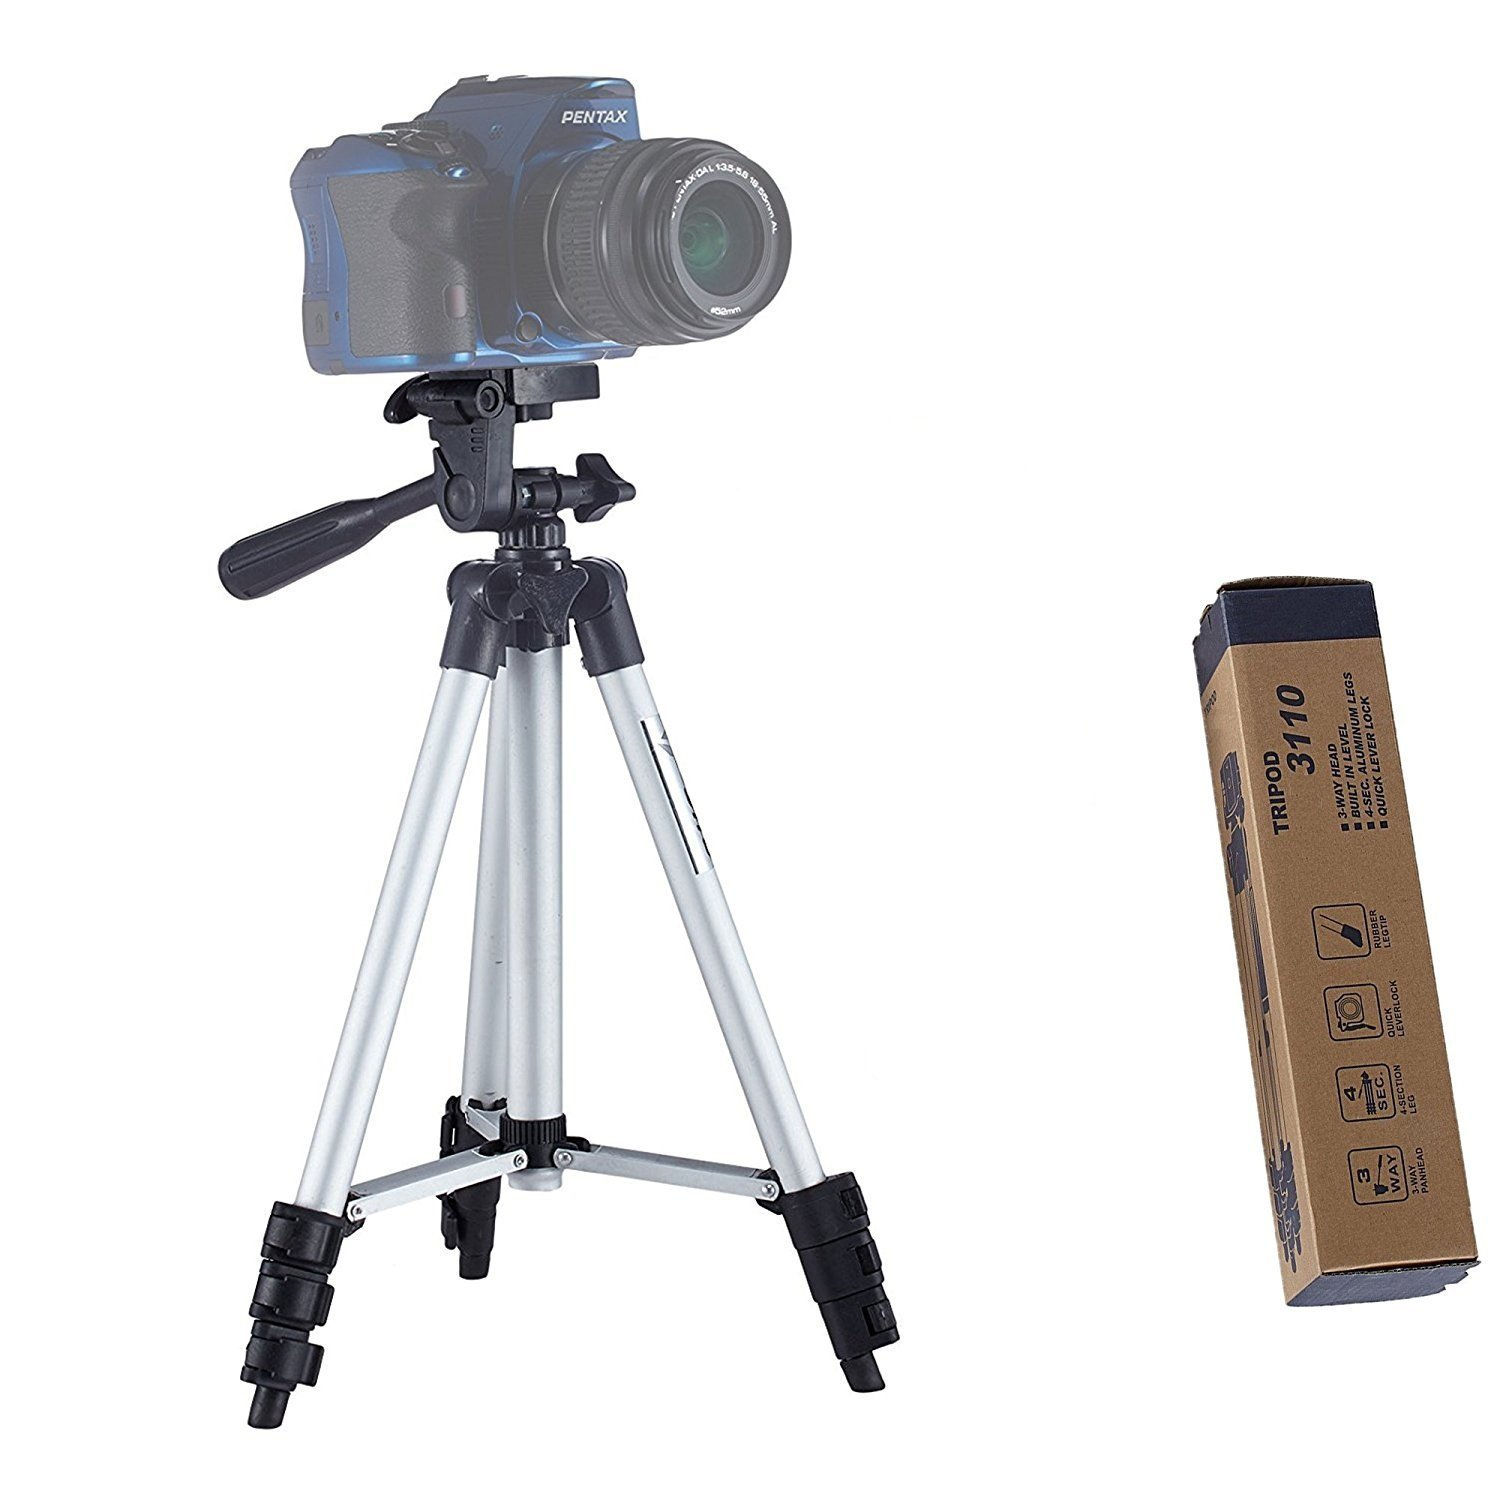 7d13fb4ee Buy Jhapat Tripod-3110 40.2 Inch Portable Camera Tripod with 3D Head    Quick Release Plate Online at Low Price in India